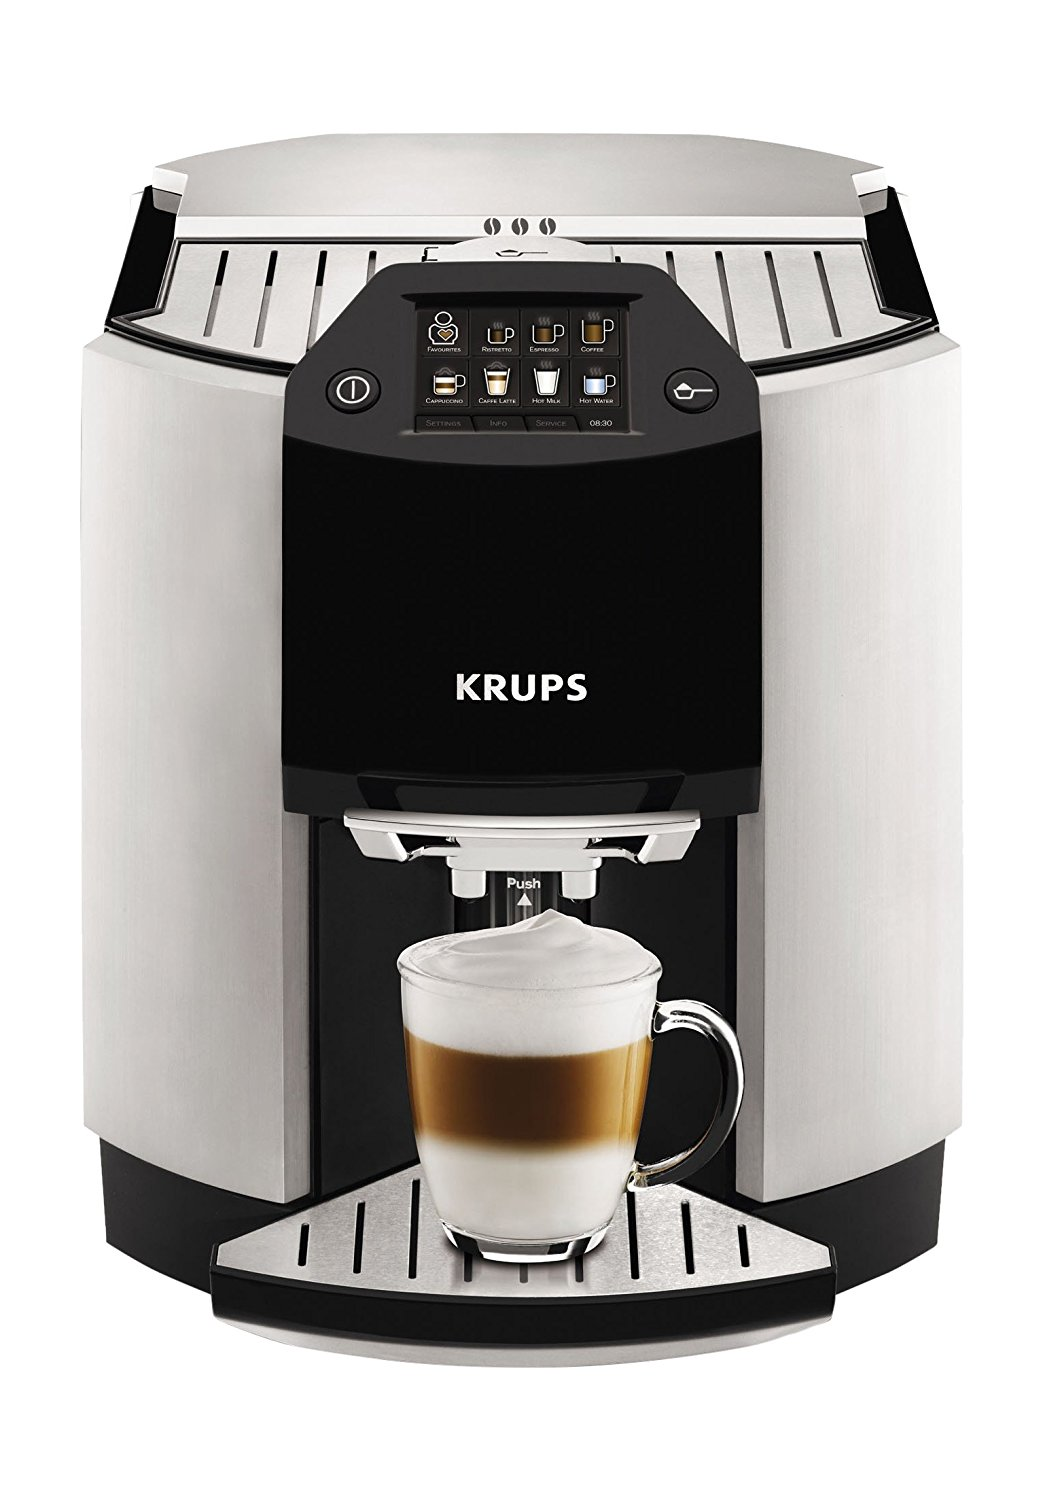 KRUPS One-Touch Cappuccino Machine